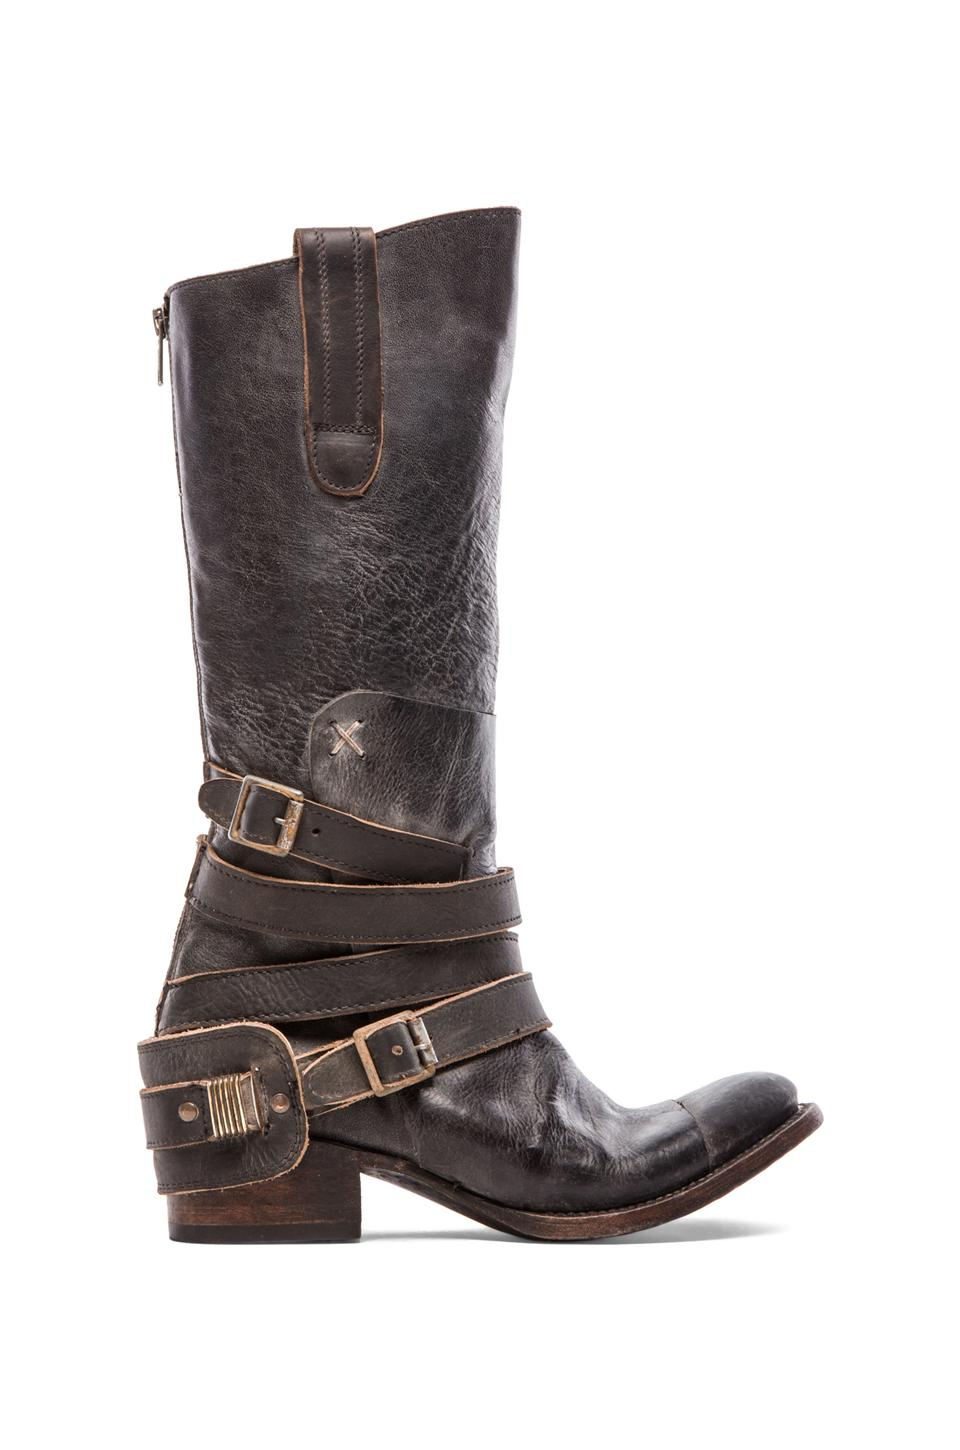 Freebird by Steven Dakota Boot in Black